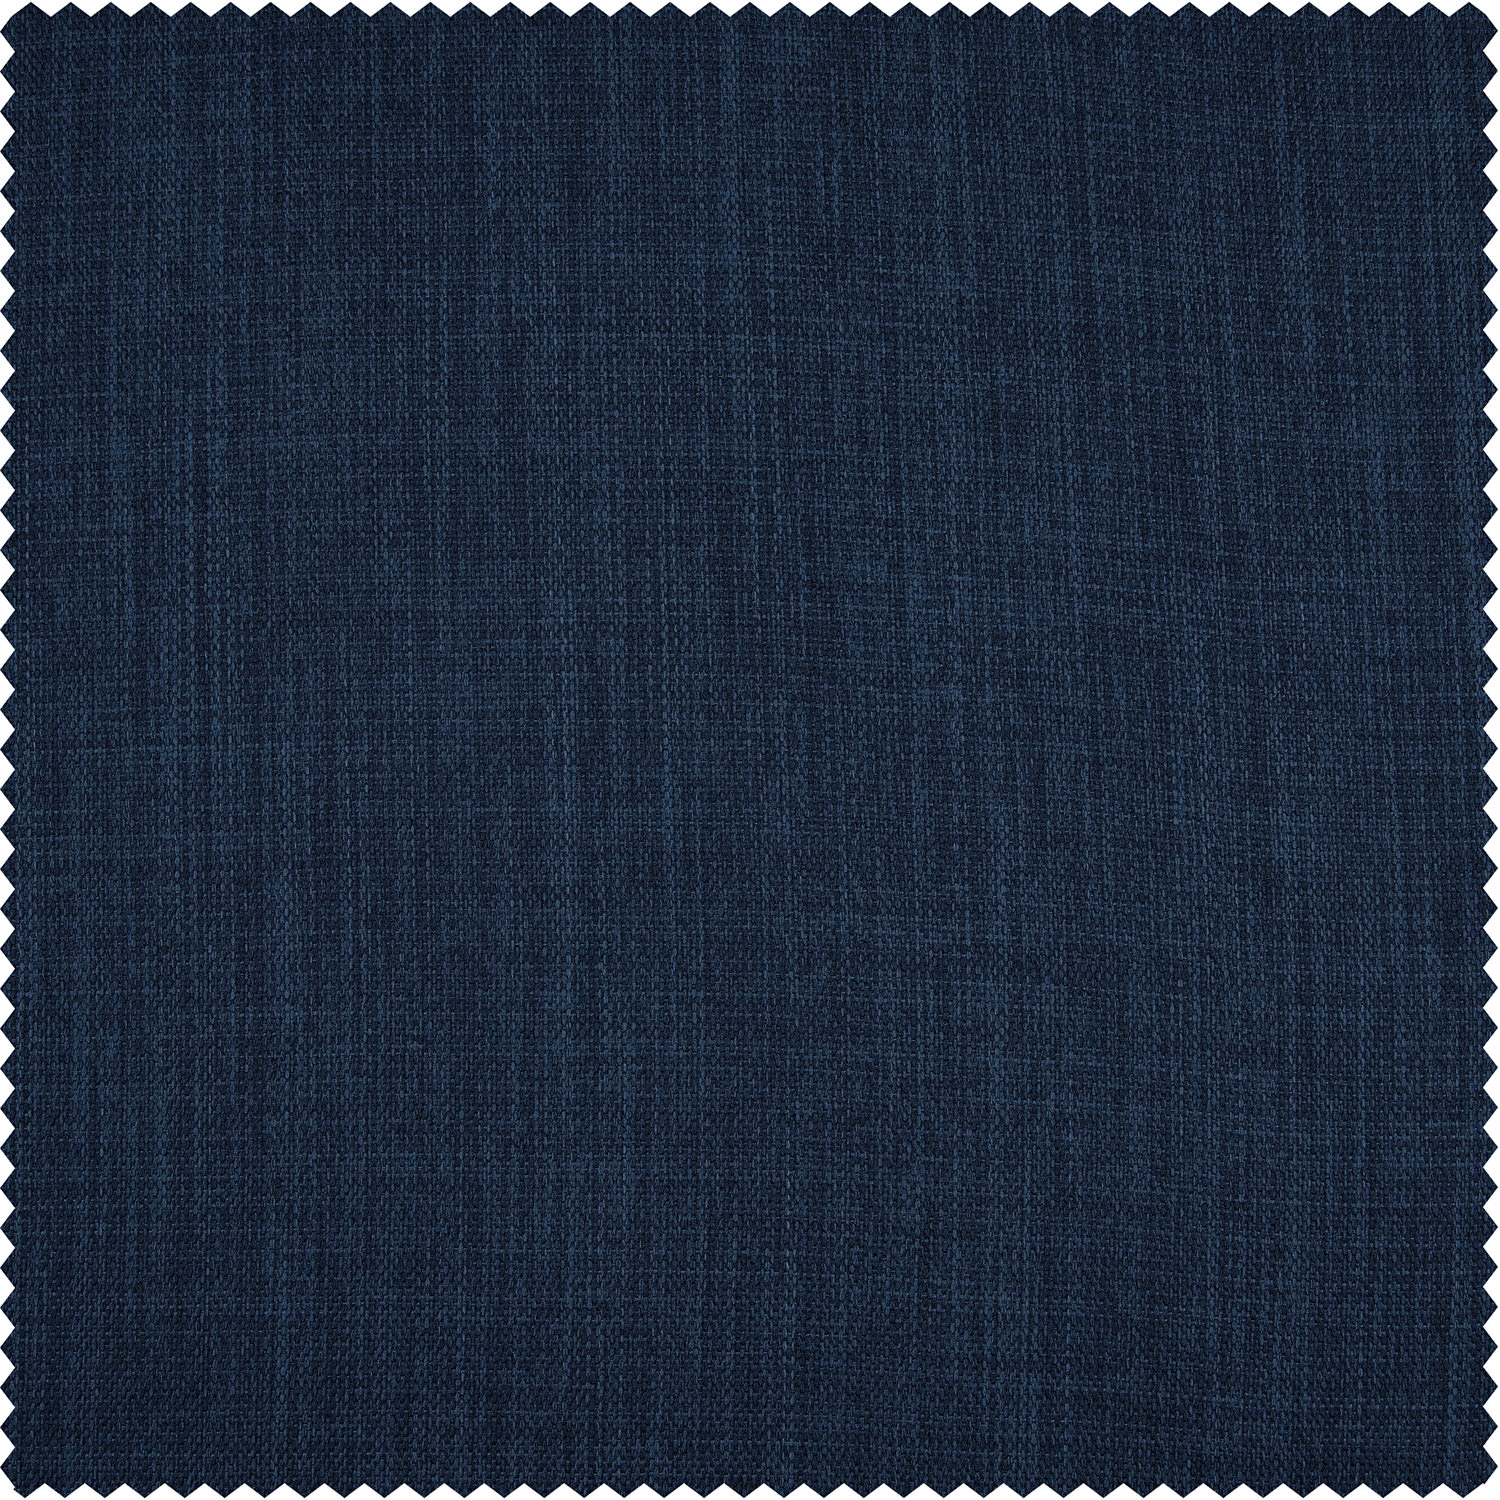 Indigo Faux Linen Blackout Room Darkening Swatch